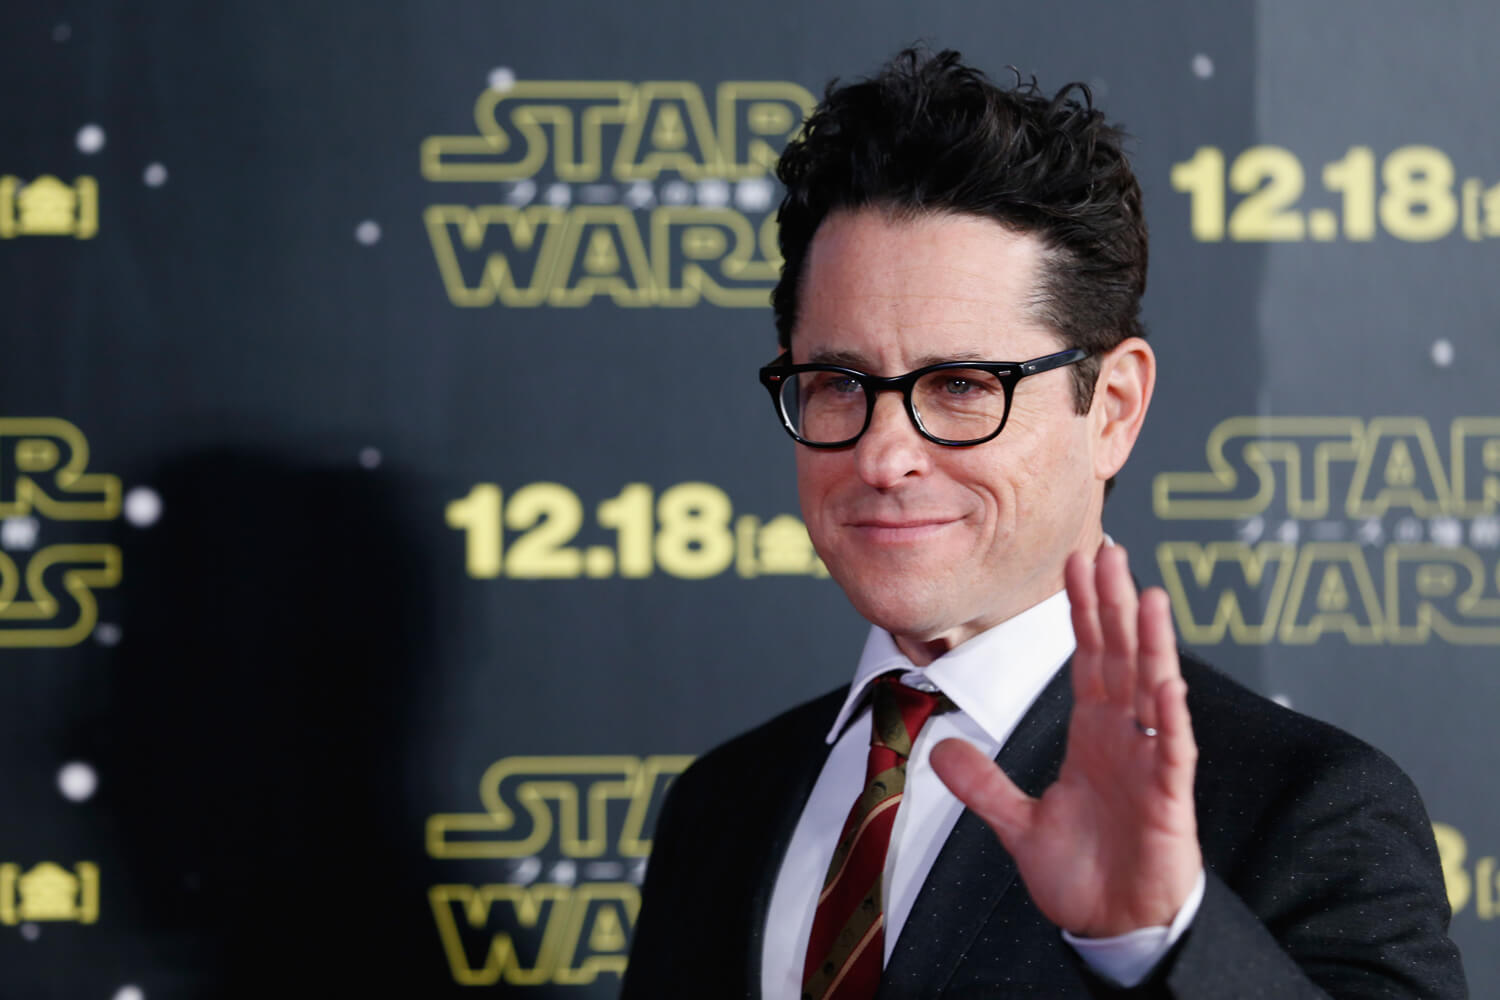 J.J. Abrams will co-write and direct Star Wars: Episode IX